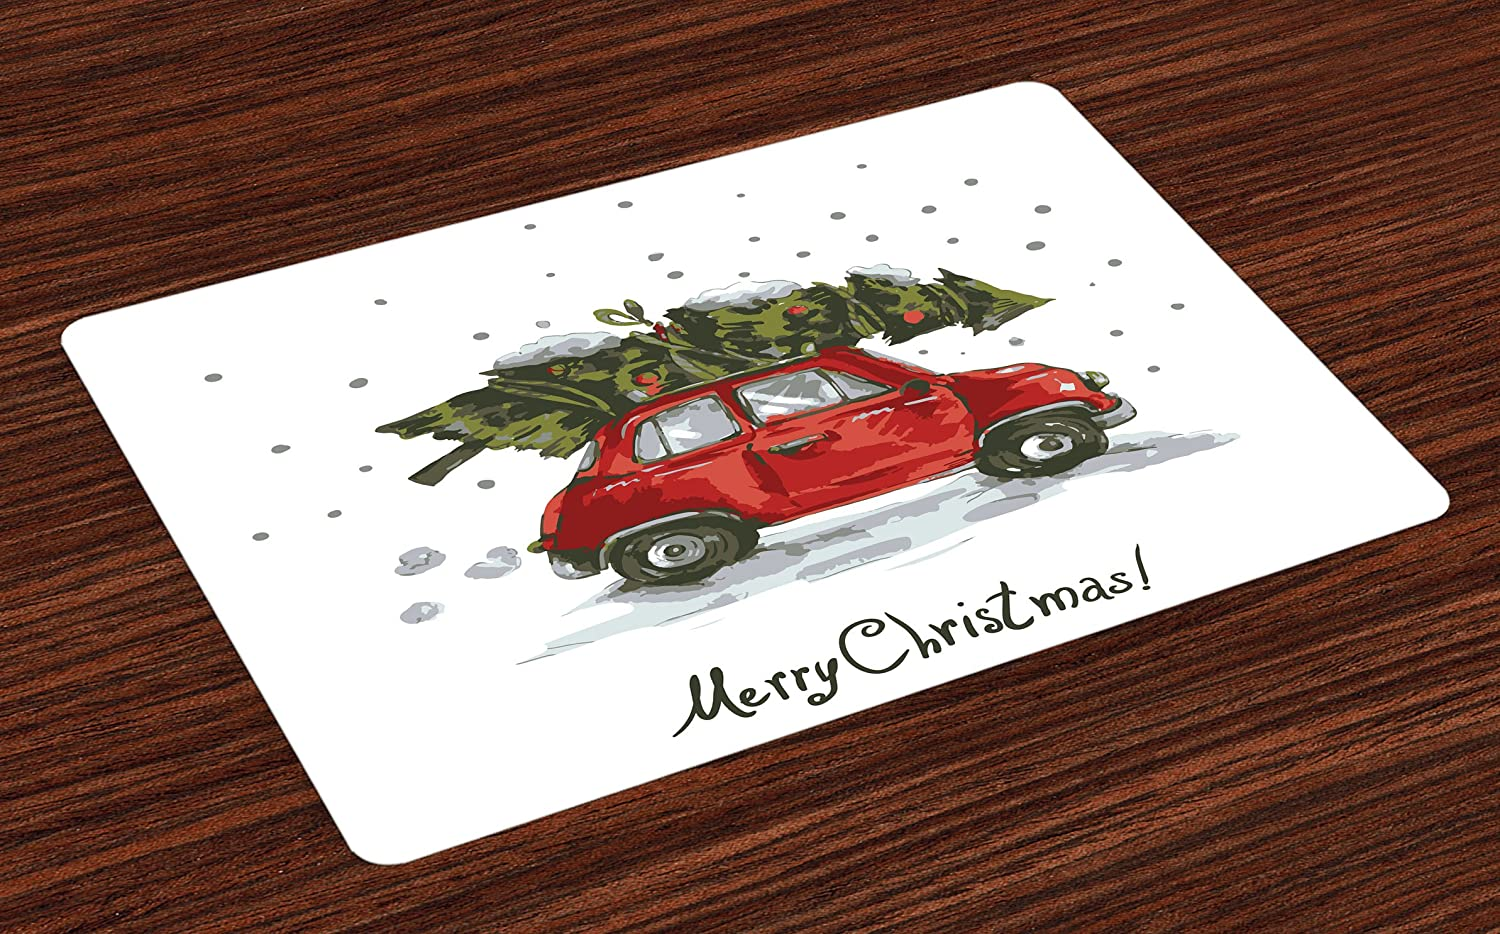 Ambesonne Christmas Place Mats Set of 4, Red Retro Style Car Xmas Tree Vintage Family Style Illustration Snowy Winter Art, Washable Fabric Placemats for Dining Table, Standard Size, Red Green